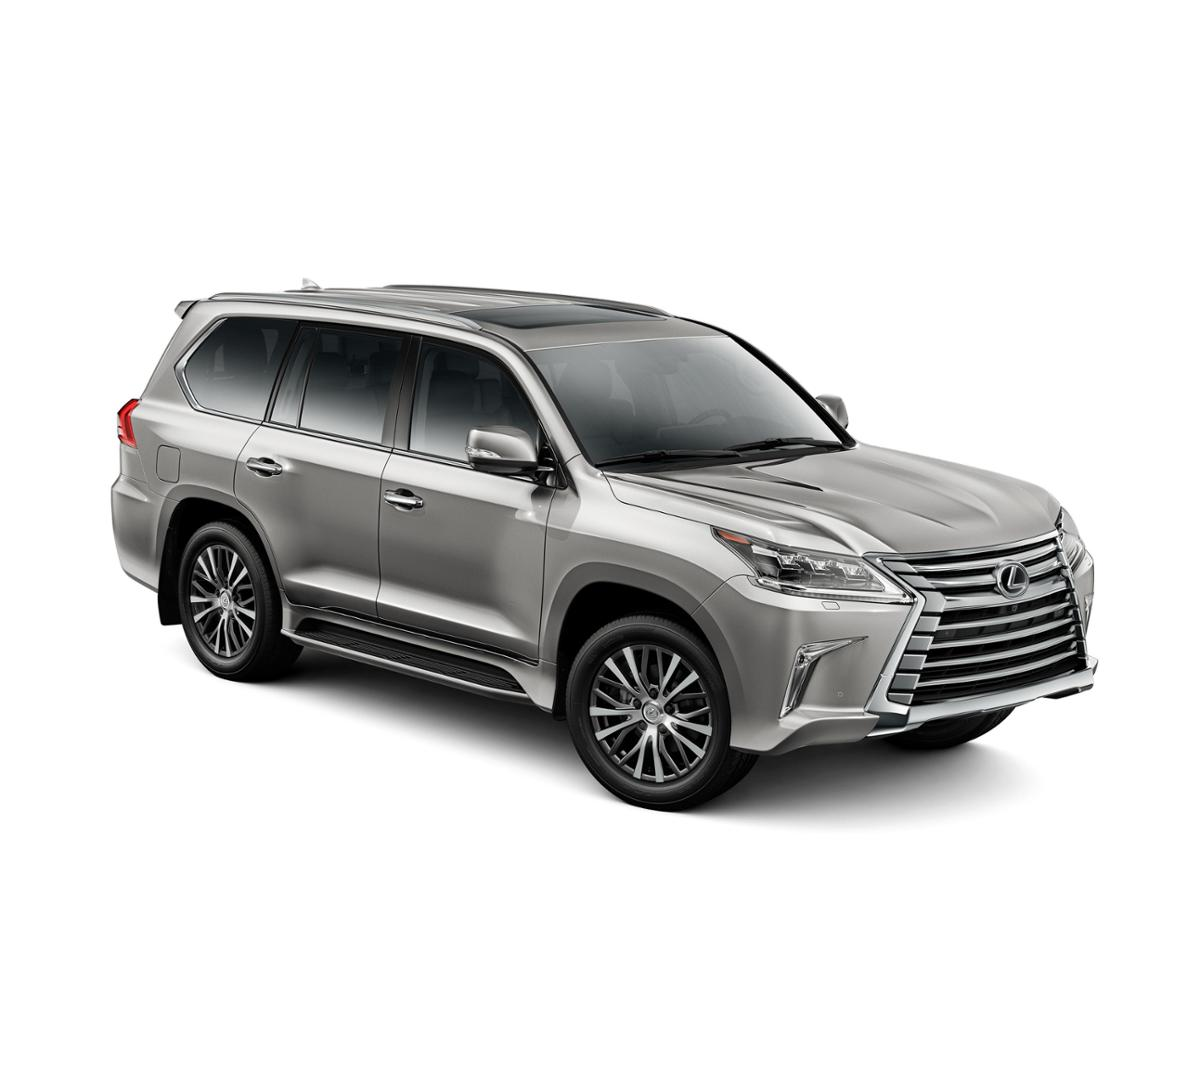 2019 Lexus LX 570 Vehicle Photo in Santa Monica, CA 90404